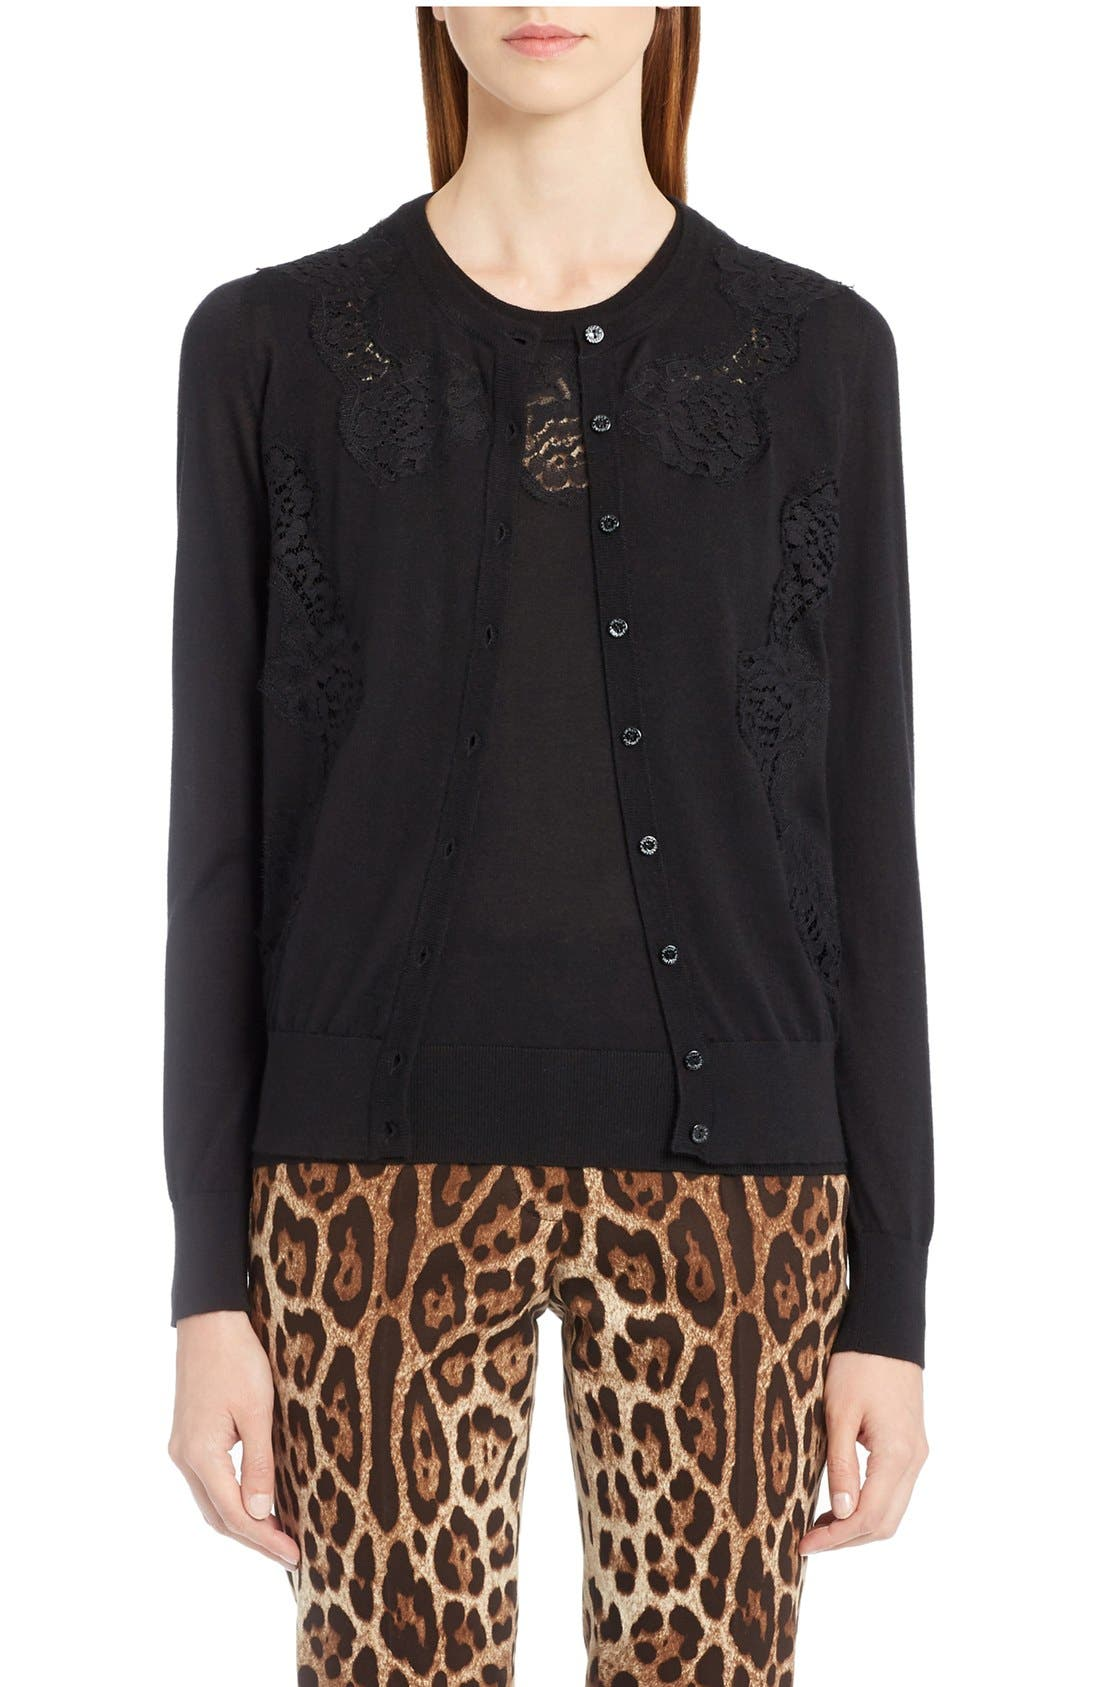 Main Image - Dolce&Gabbana Lace Inset Cashmere Blend Cardigan